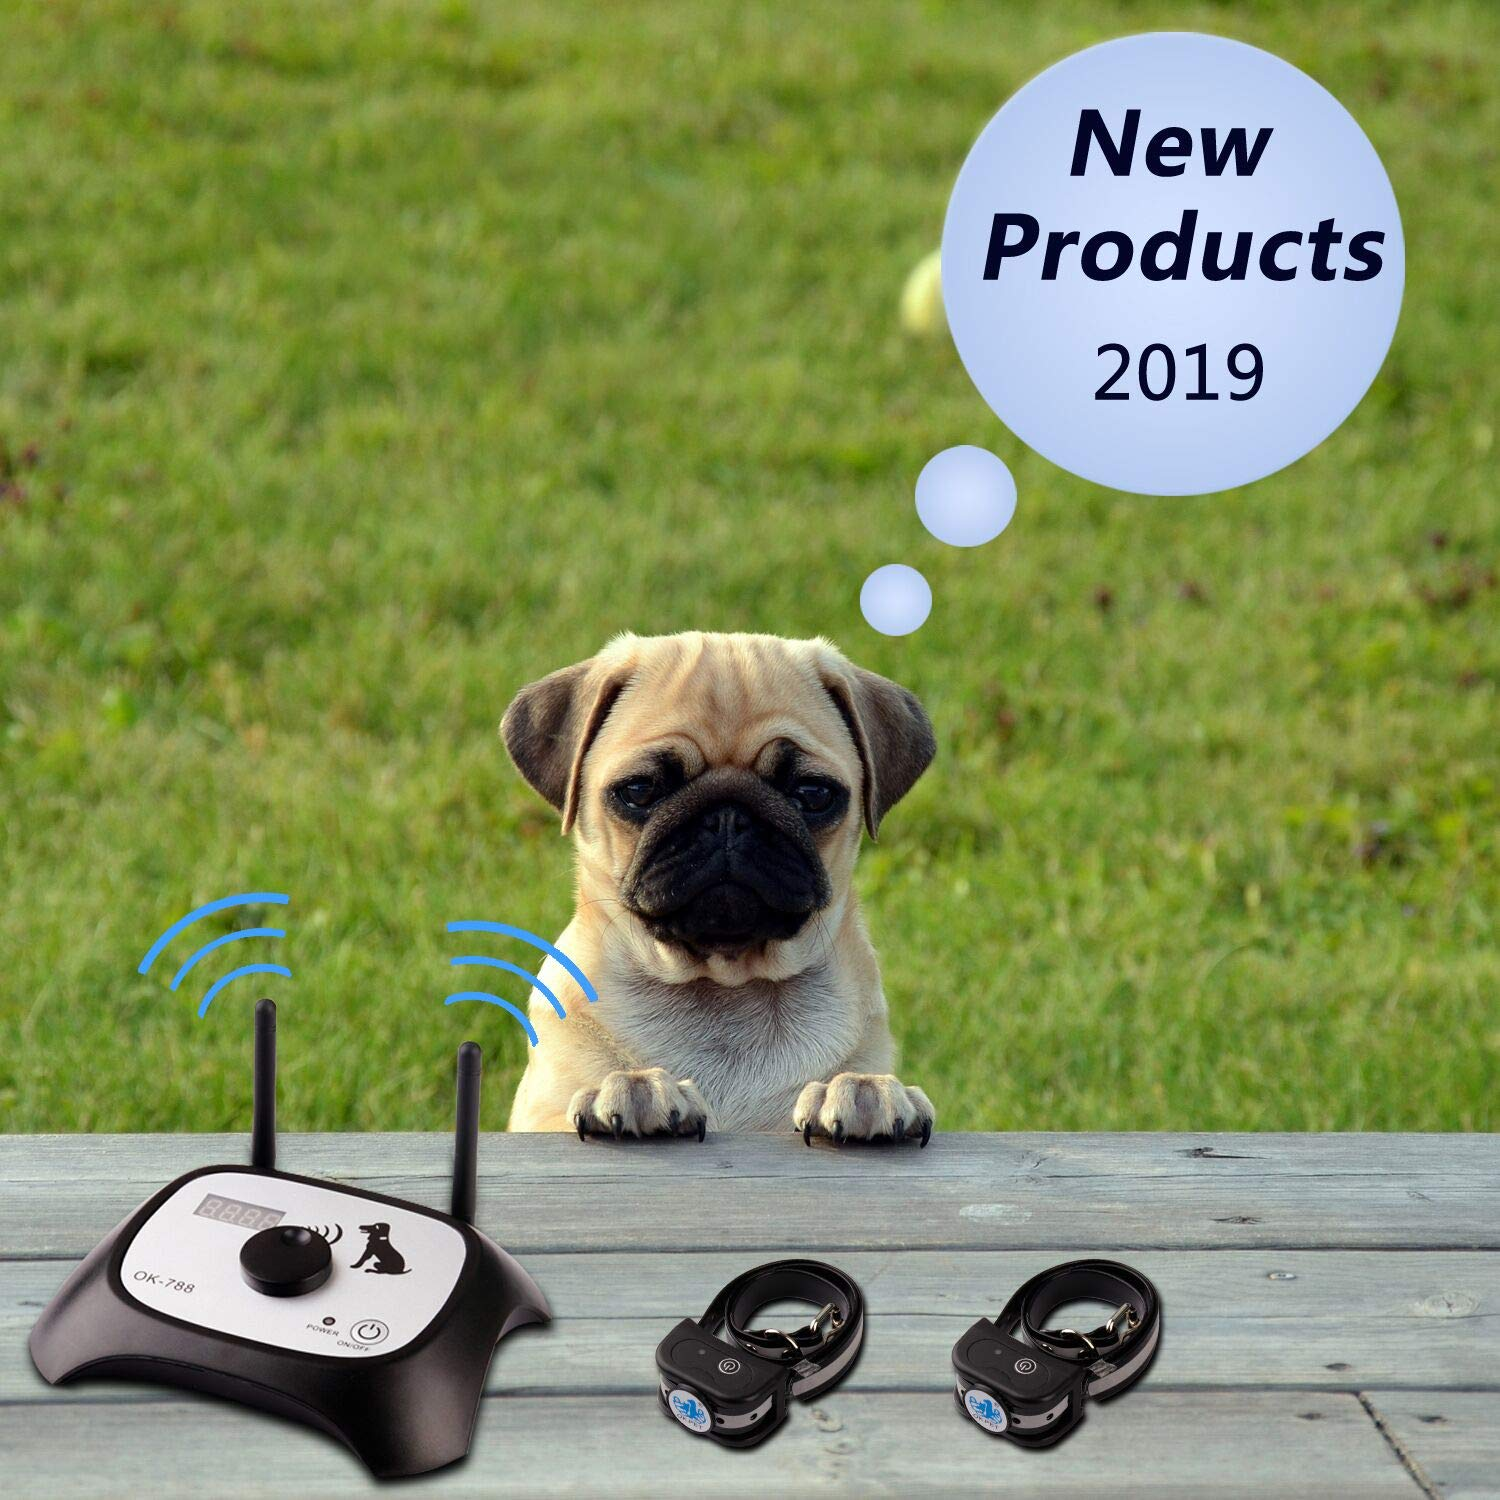 Wireless Dog Fence Electric Pet Containment System, Safe Effective Beep/Shock Dog Collar, Adjustable Control Range 1000 Feet & Display Distance, Rechargeable Waterproof Collar Receiver (2 Dog System)